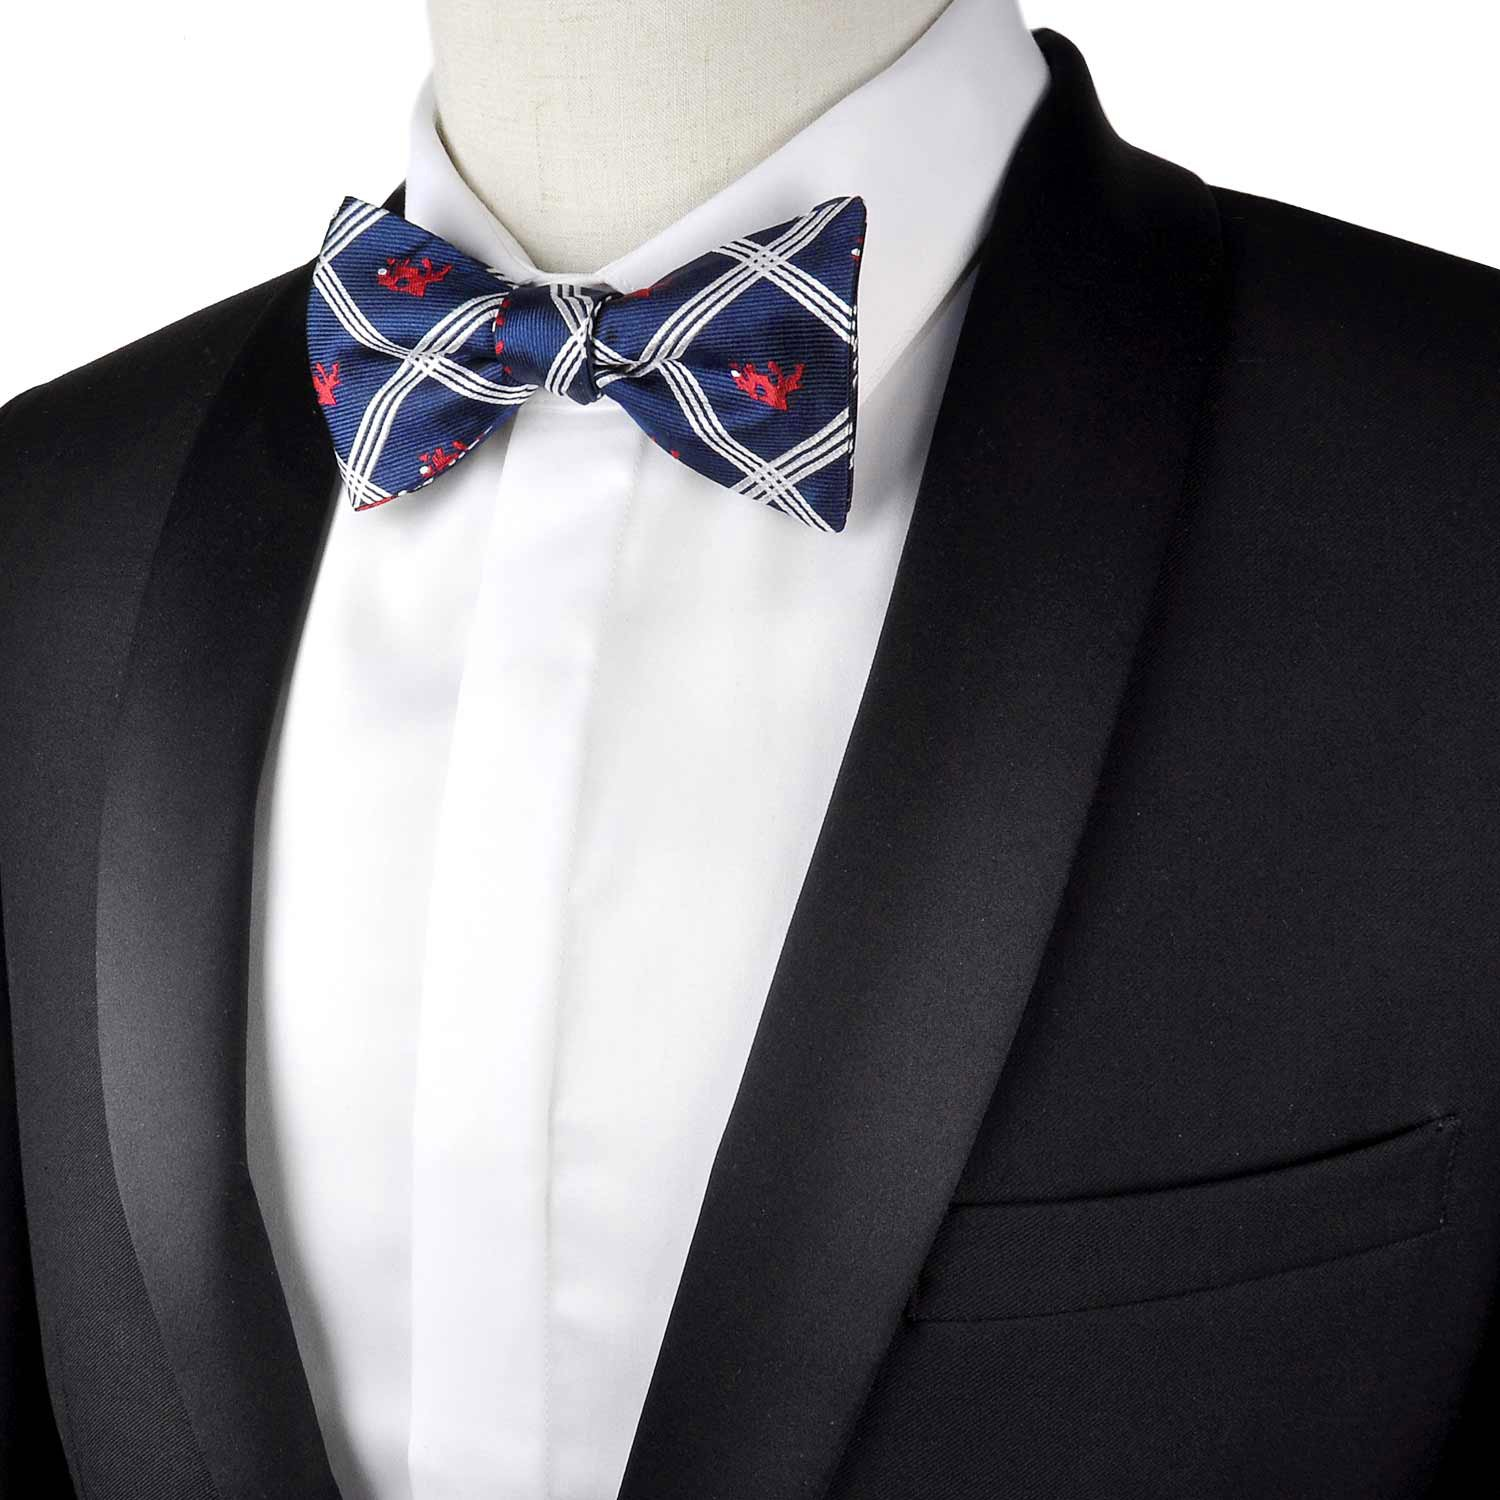 100/% Silk Mens Abstract Camel Bowtie Self Tie Bow Tie by Murong Jun Great for a Wedding or Tuxedo